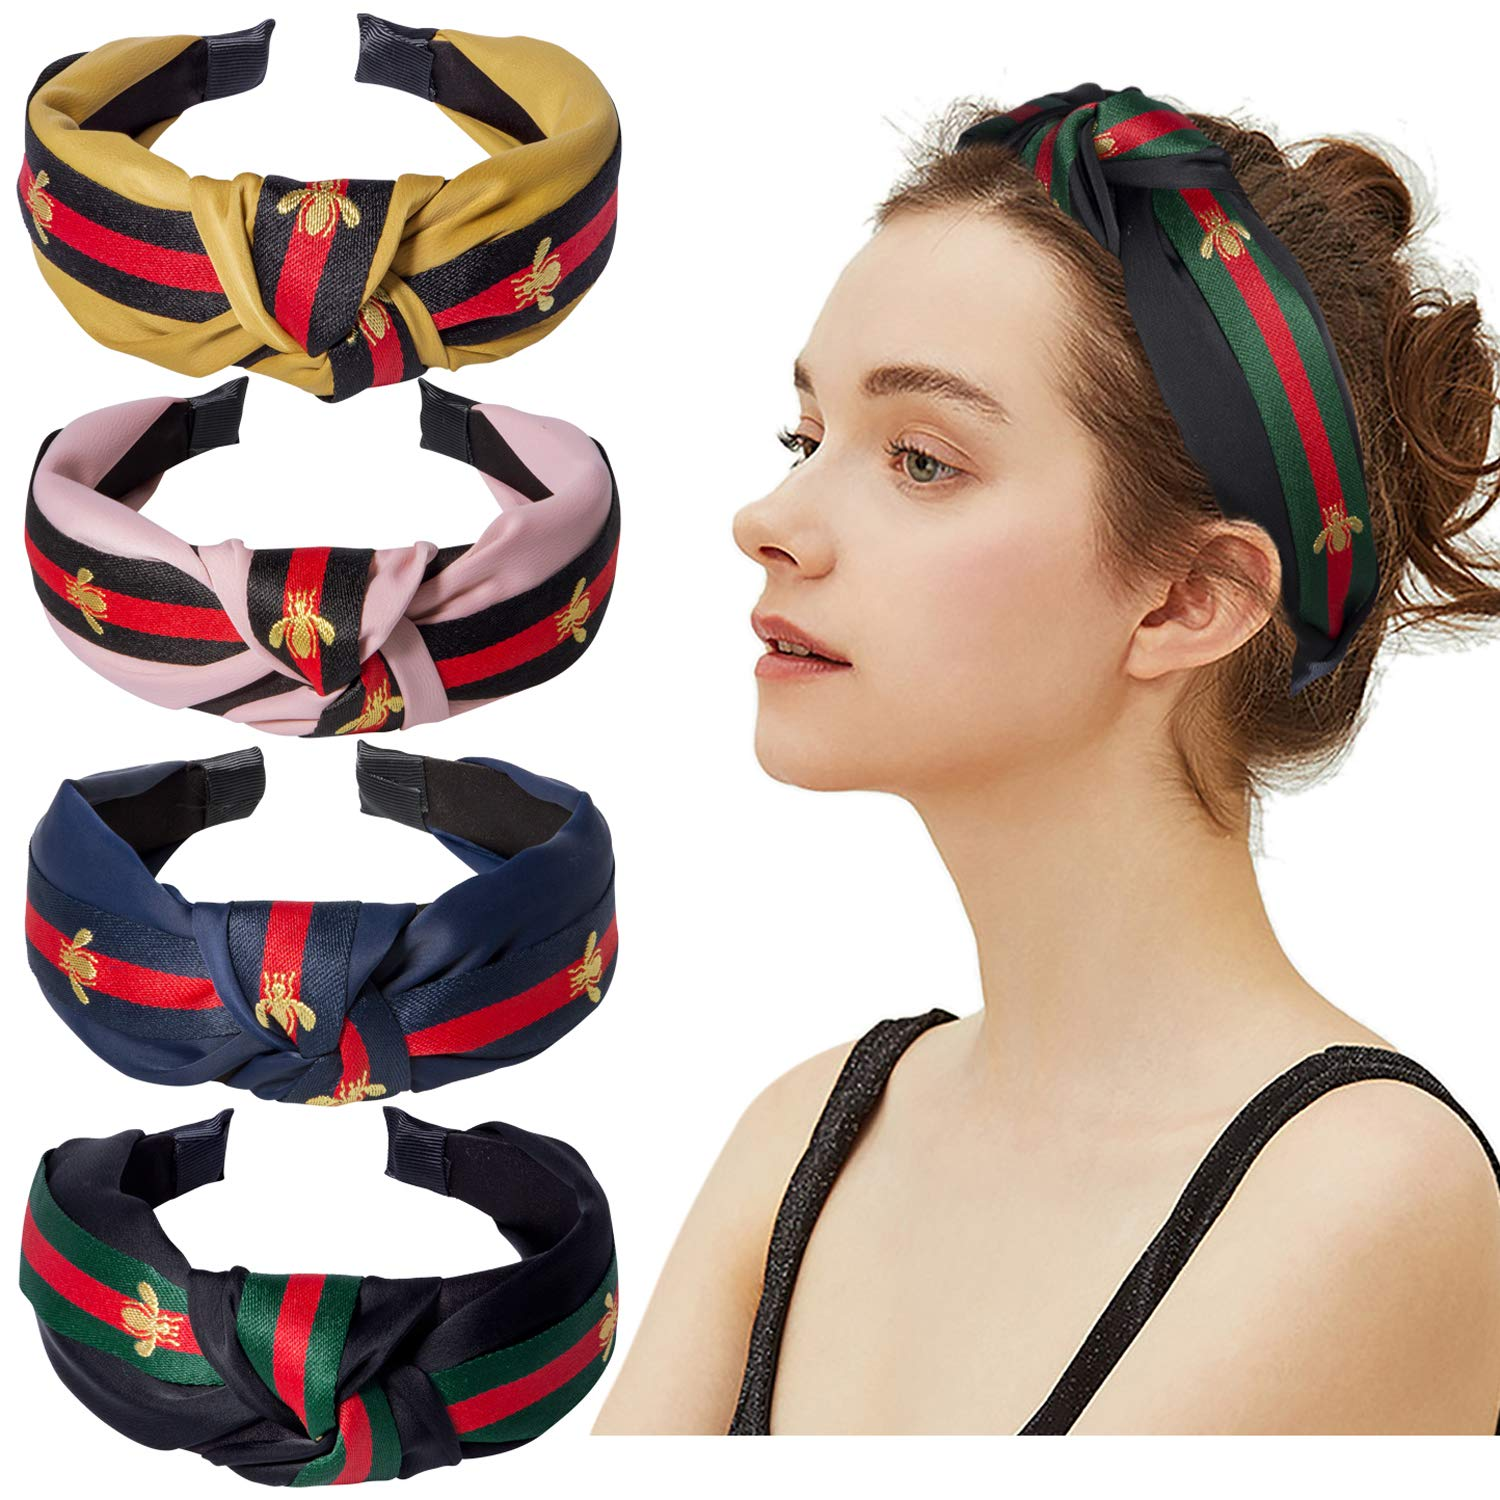 Cute Knot Headbands for Women - 4 Pack Hair Hoops Wide Stripe Headband with Bee Animal, Cross Knot Hair Band with Cloth Wrapped by Amandir